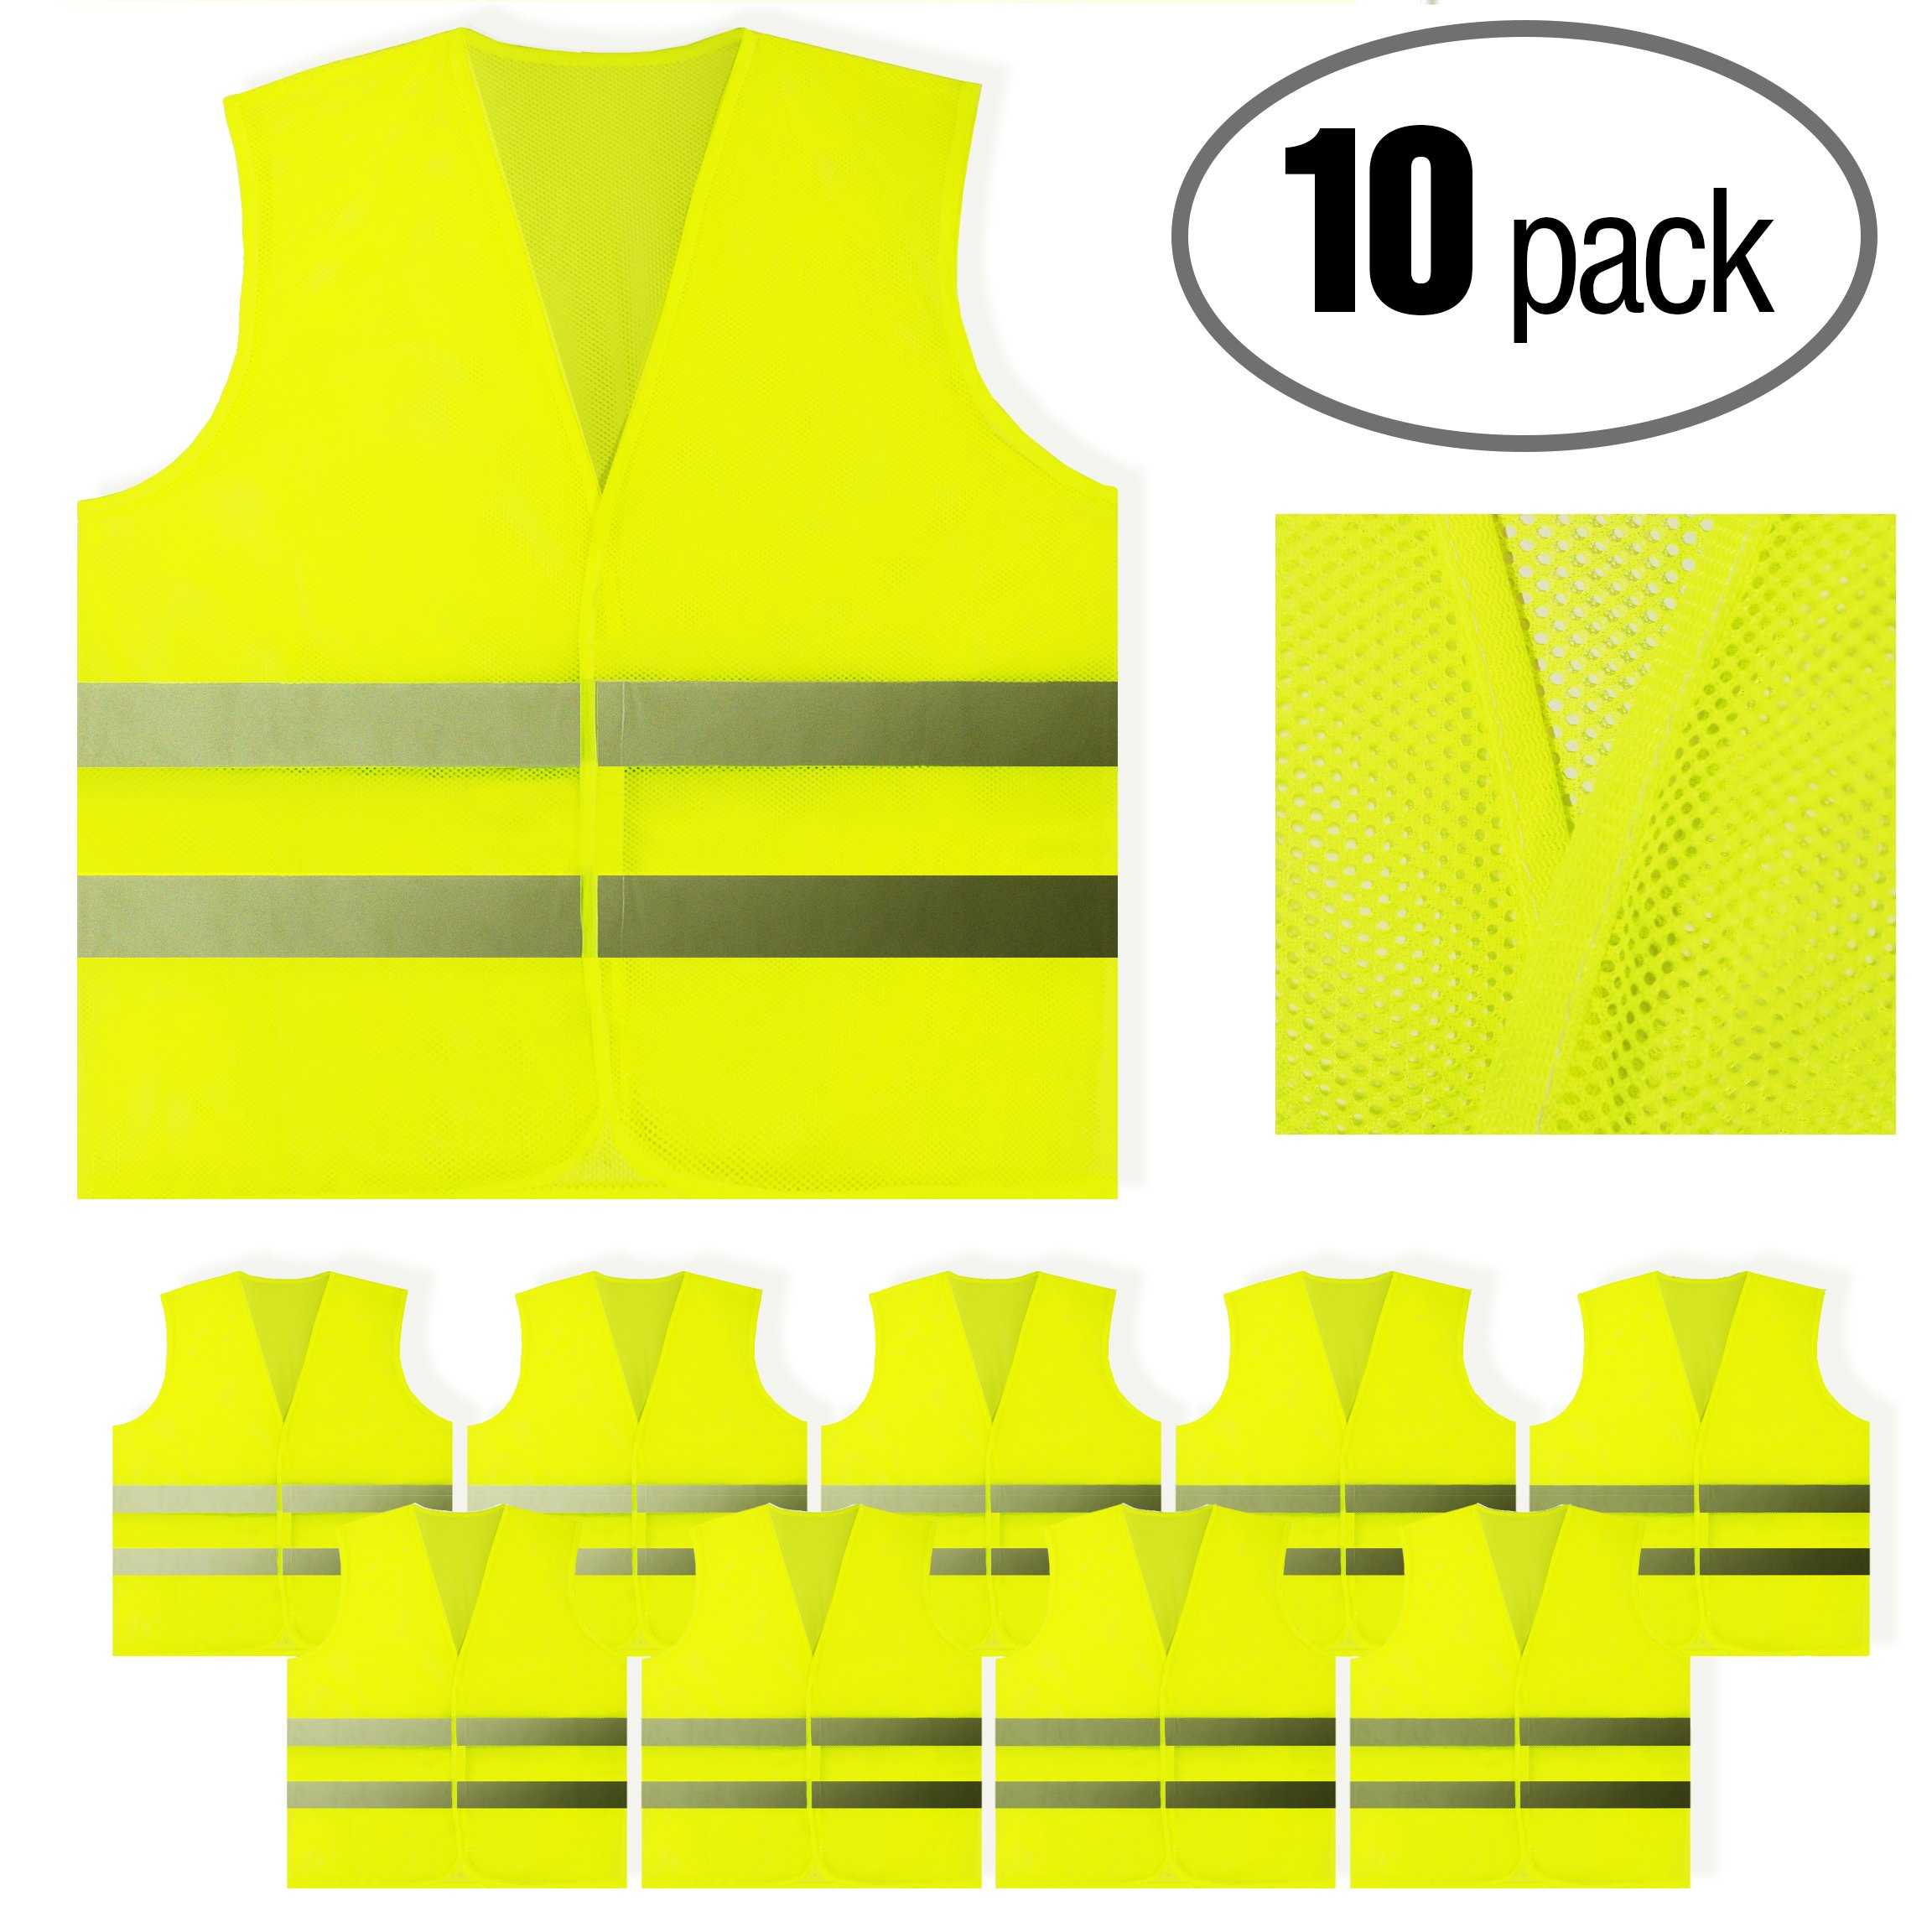 PeerBasics, 10 Pack, Yellow Reflective Safety Vest, Silver Strip, Bright Breathable Neon Yellow (Mesh, 10) by PeerBasics (Image #7)